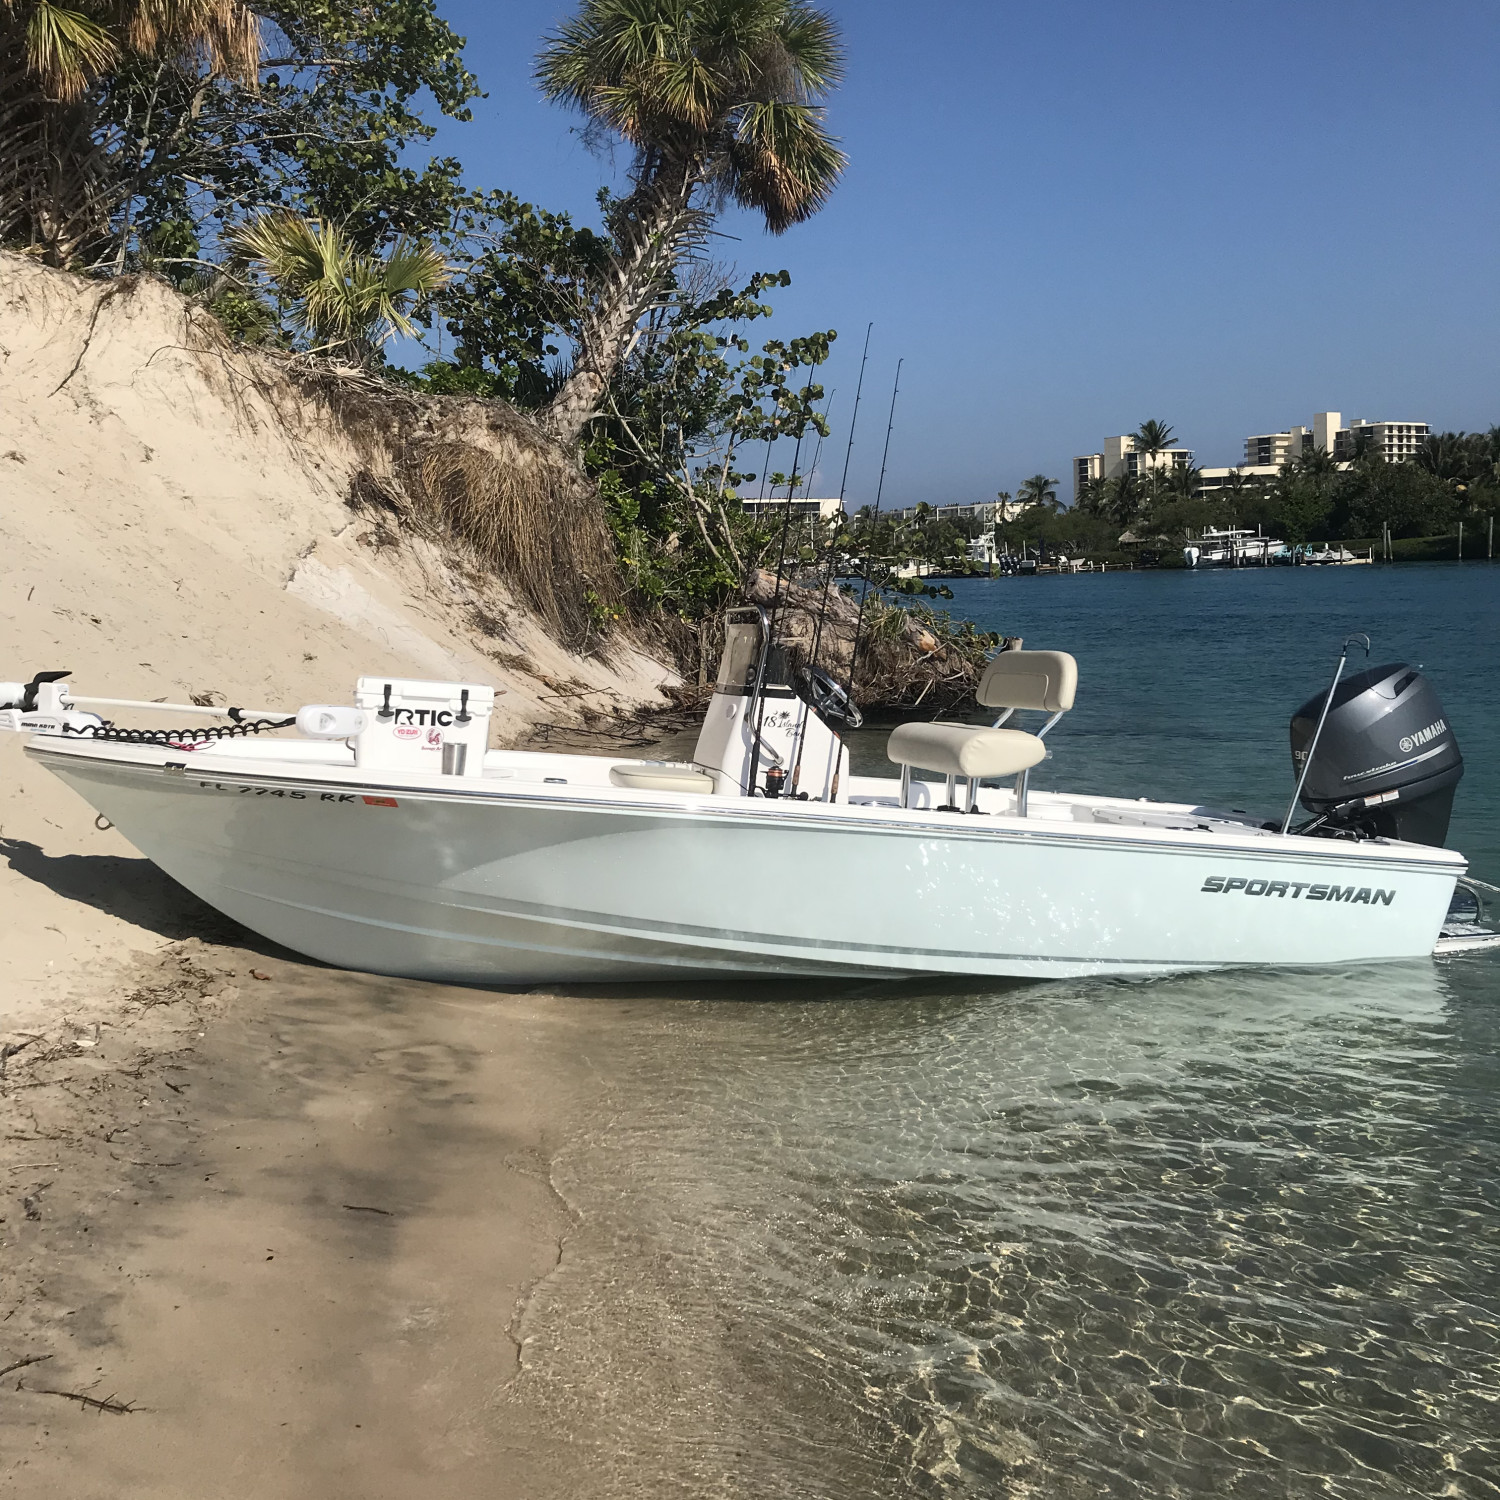 Title: From fishin to chillin - On board their Sportsman Island Bay 18 Bay Boat - Location: Jupiter FL. Participating in the Photo Contest #SportsmanMarch2018